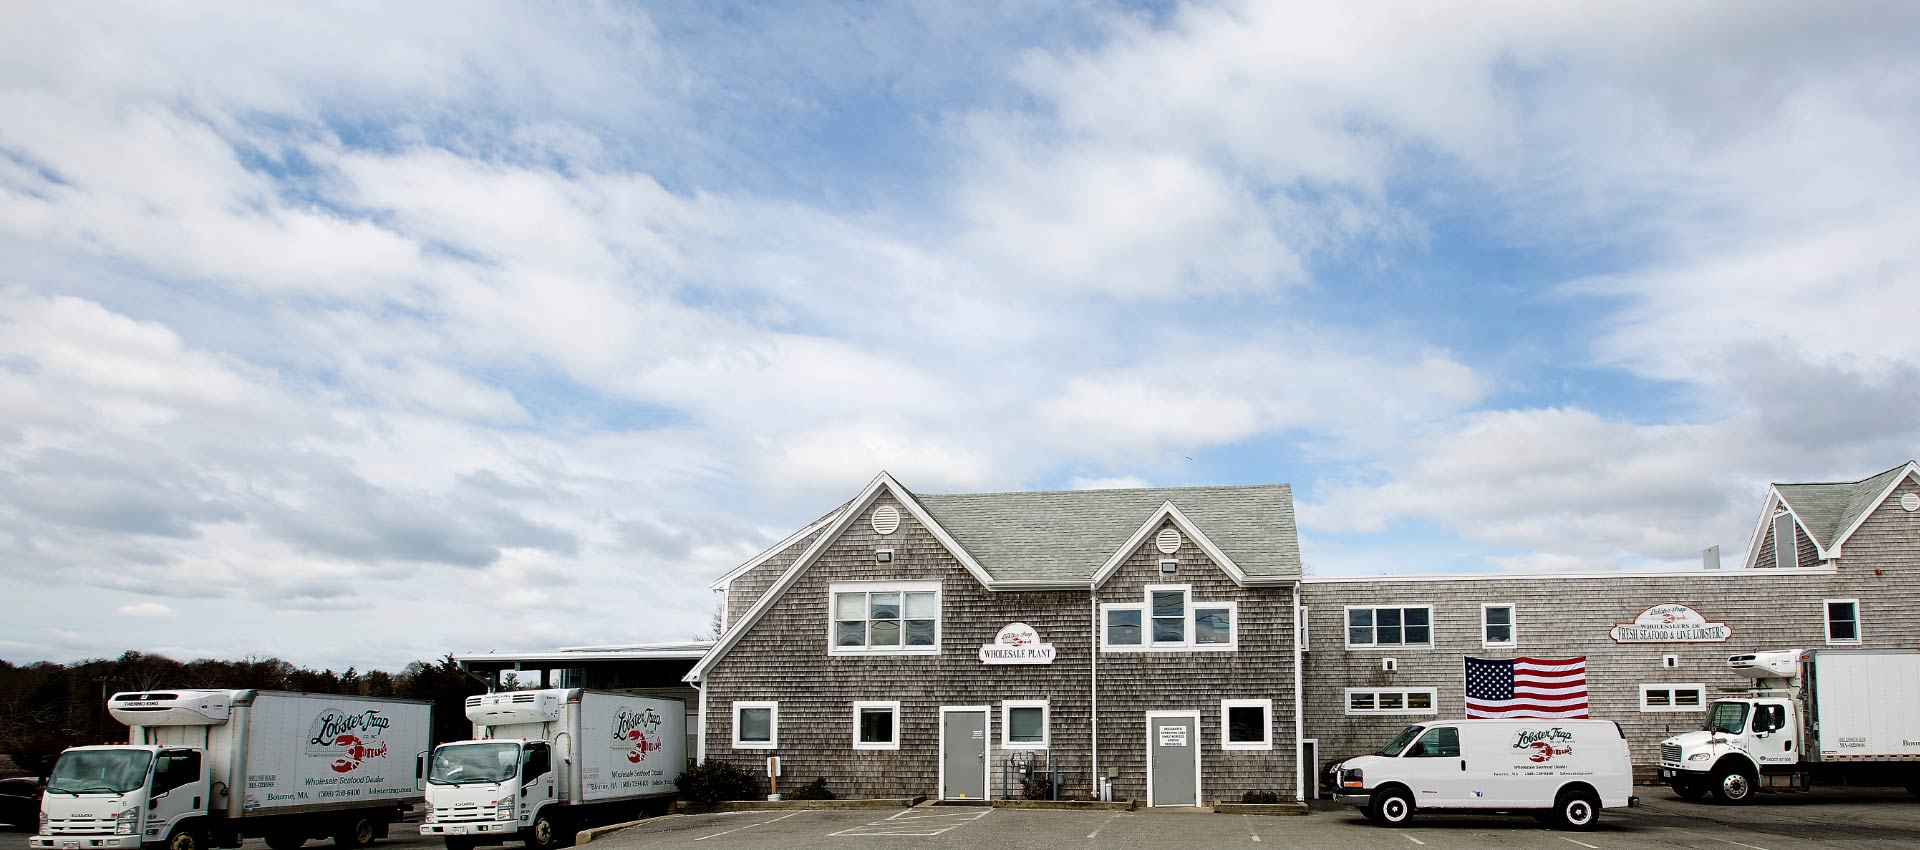 The Lobster Trap Co Wholesale Plant in Bourne, MA